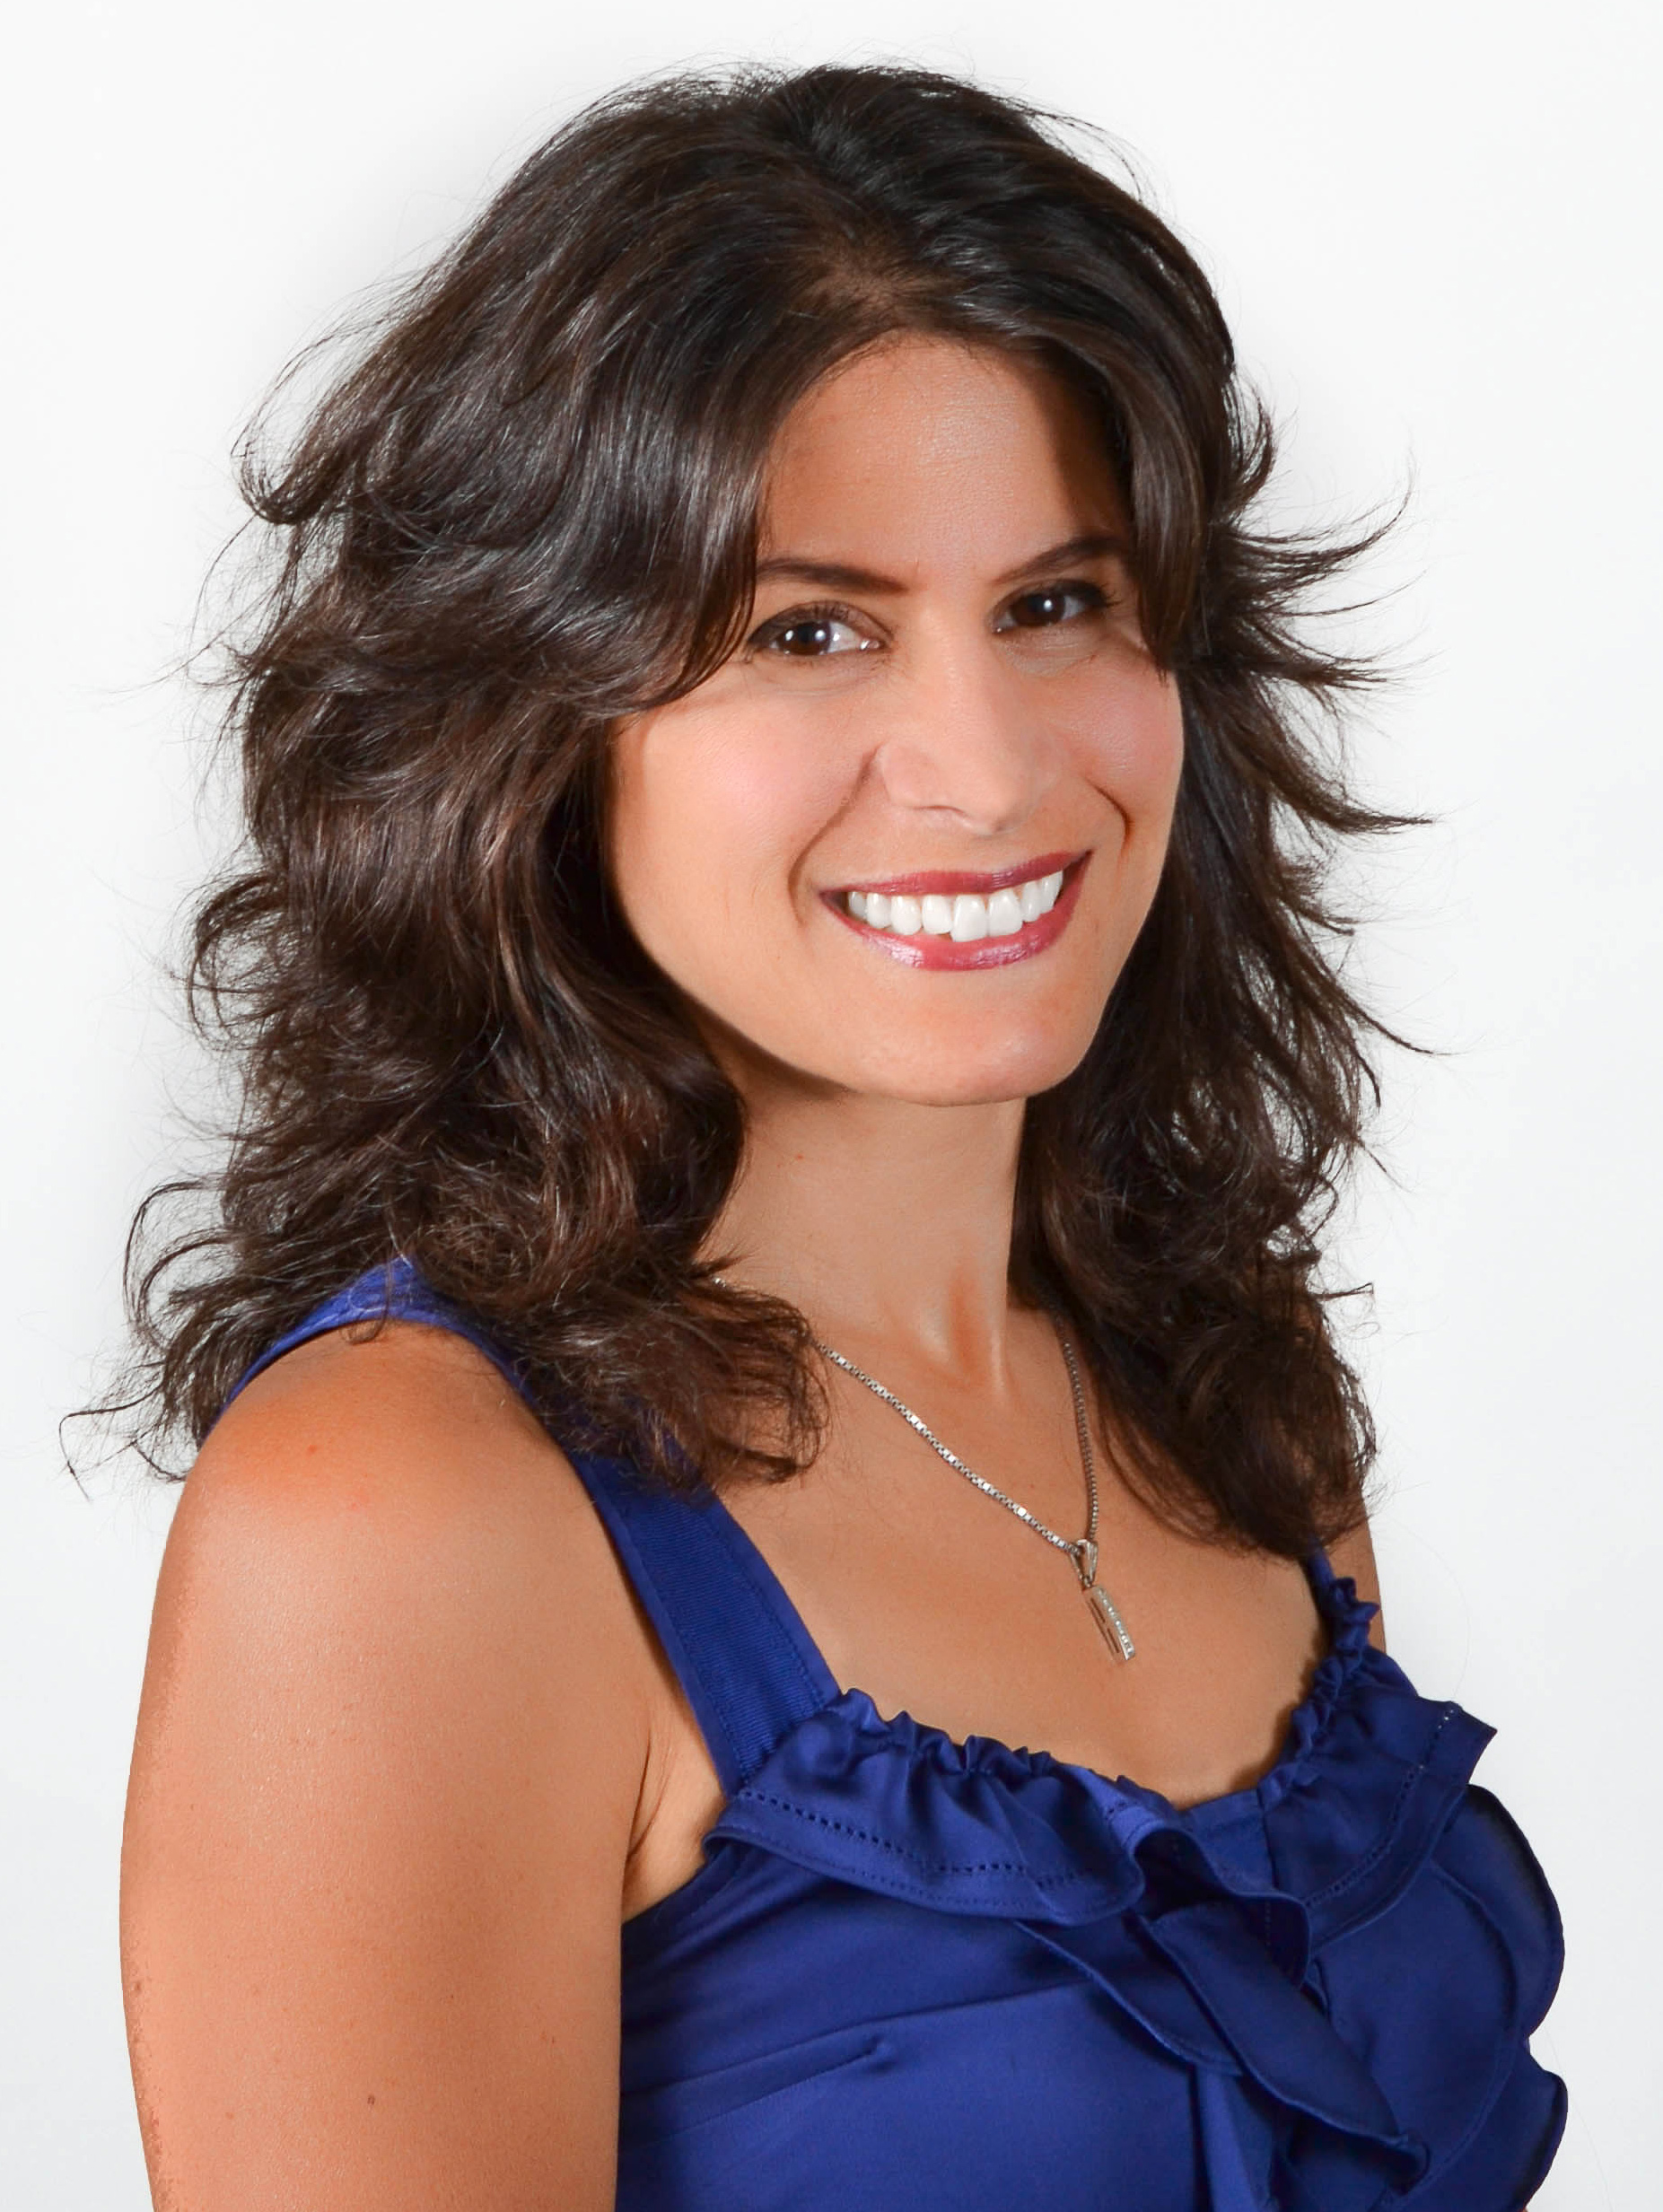 atlantic commercial group inc commercial real estate south she also attended the university of hartford mba program in marketing and mit massachusetts institute of technology in real estate development and